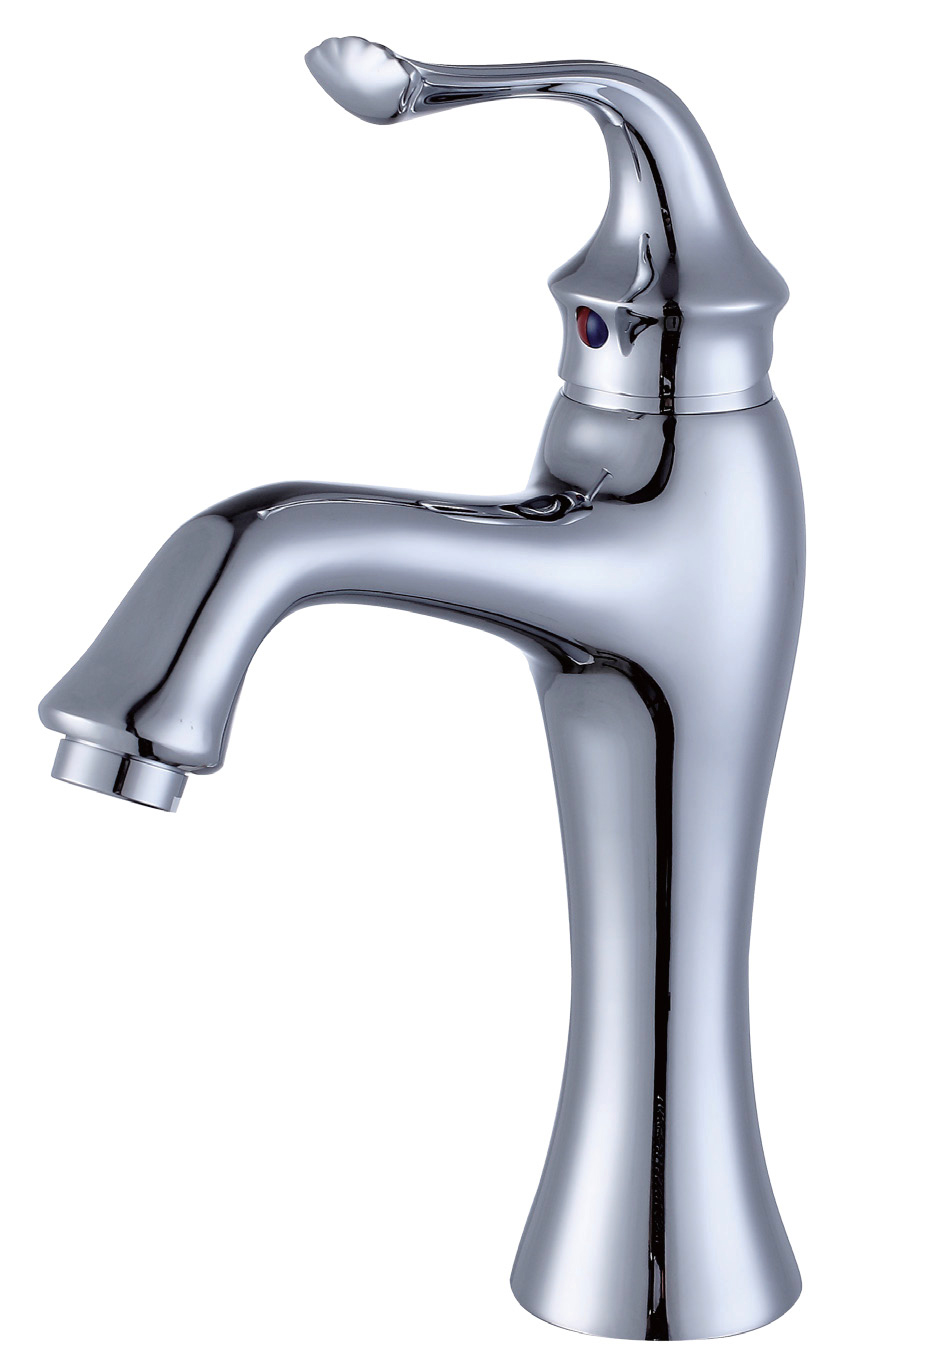 High quality single lever wash basin faucet mixer tap